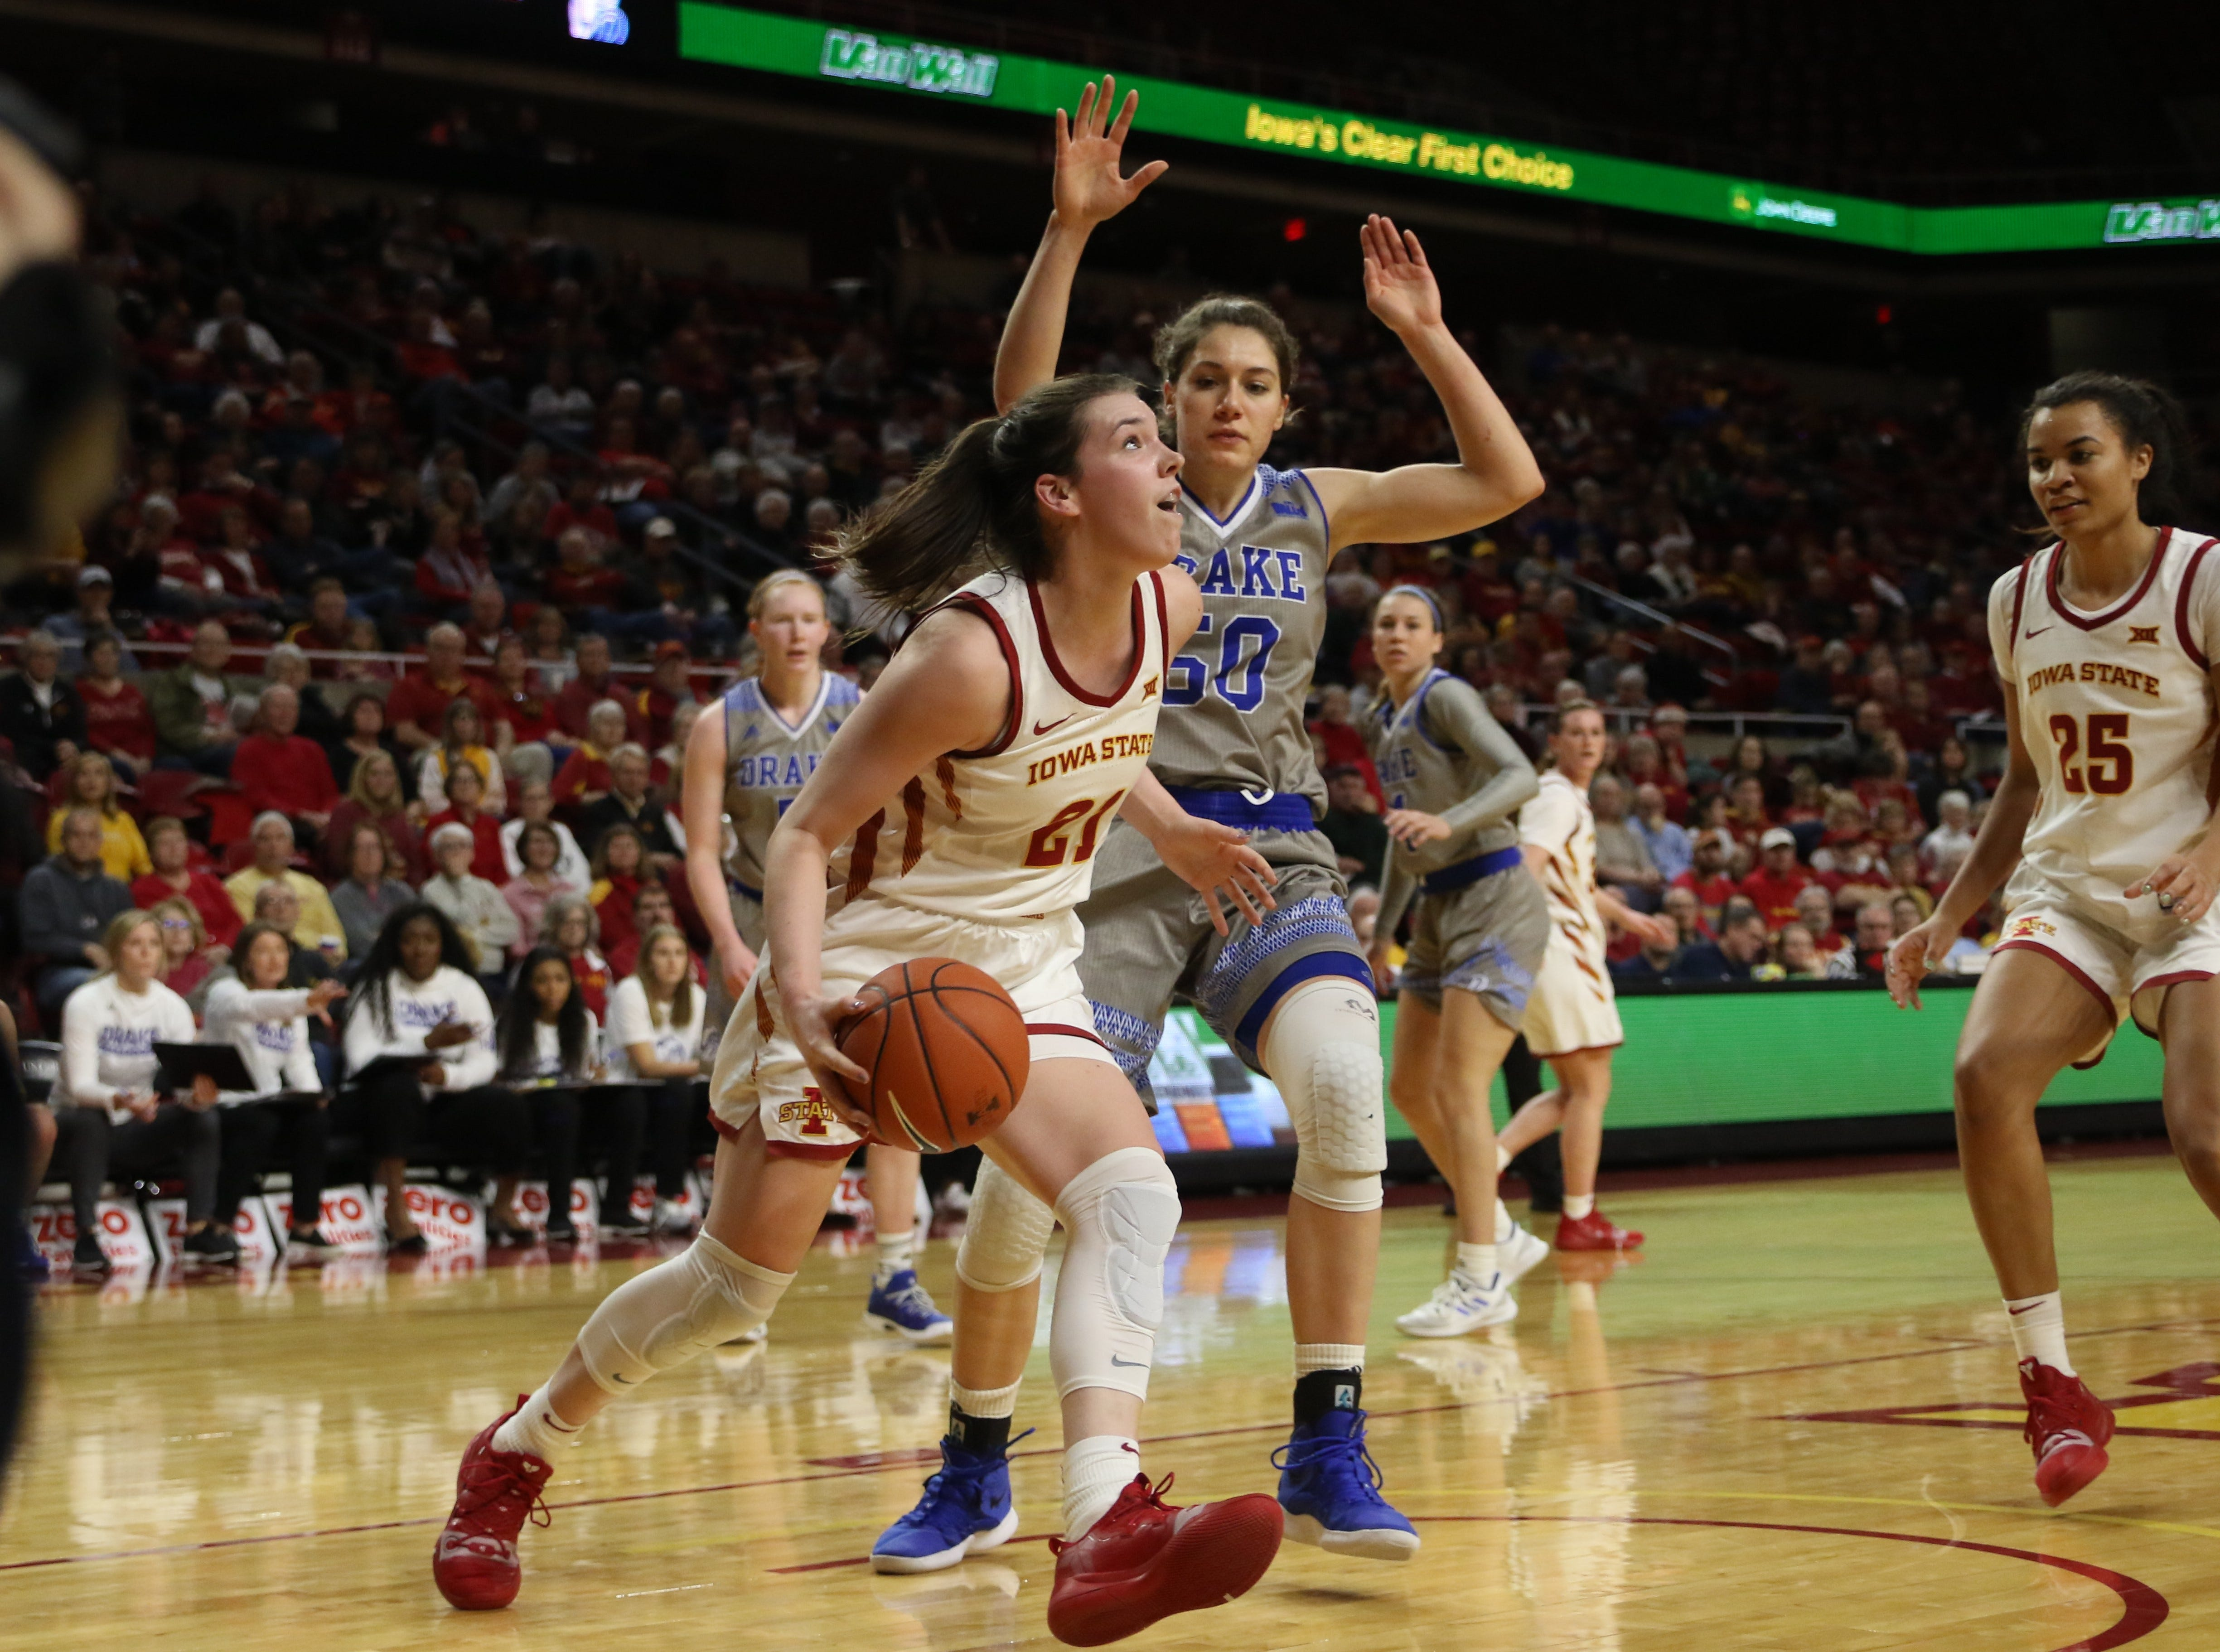 Iowa State senior Bridget Carleton drives in on her way to making a layup against Drake on Sunday. Carleton provided a spark for Iowa State in their 86-81 win.